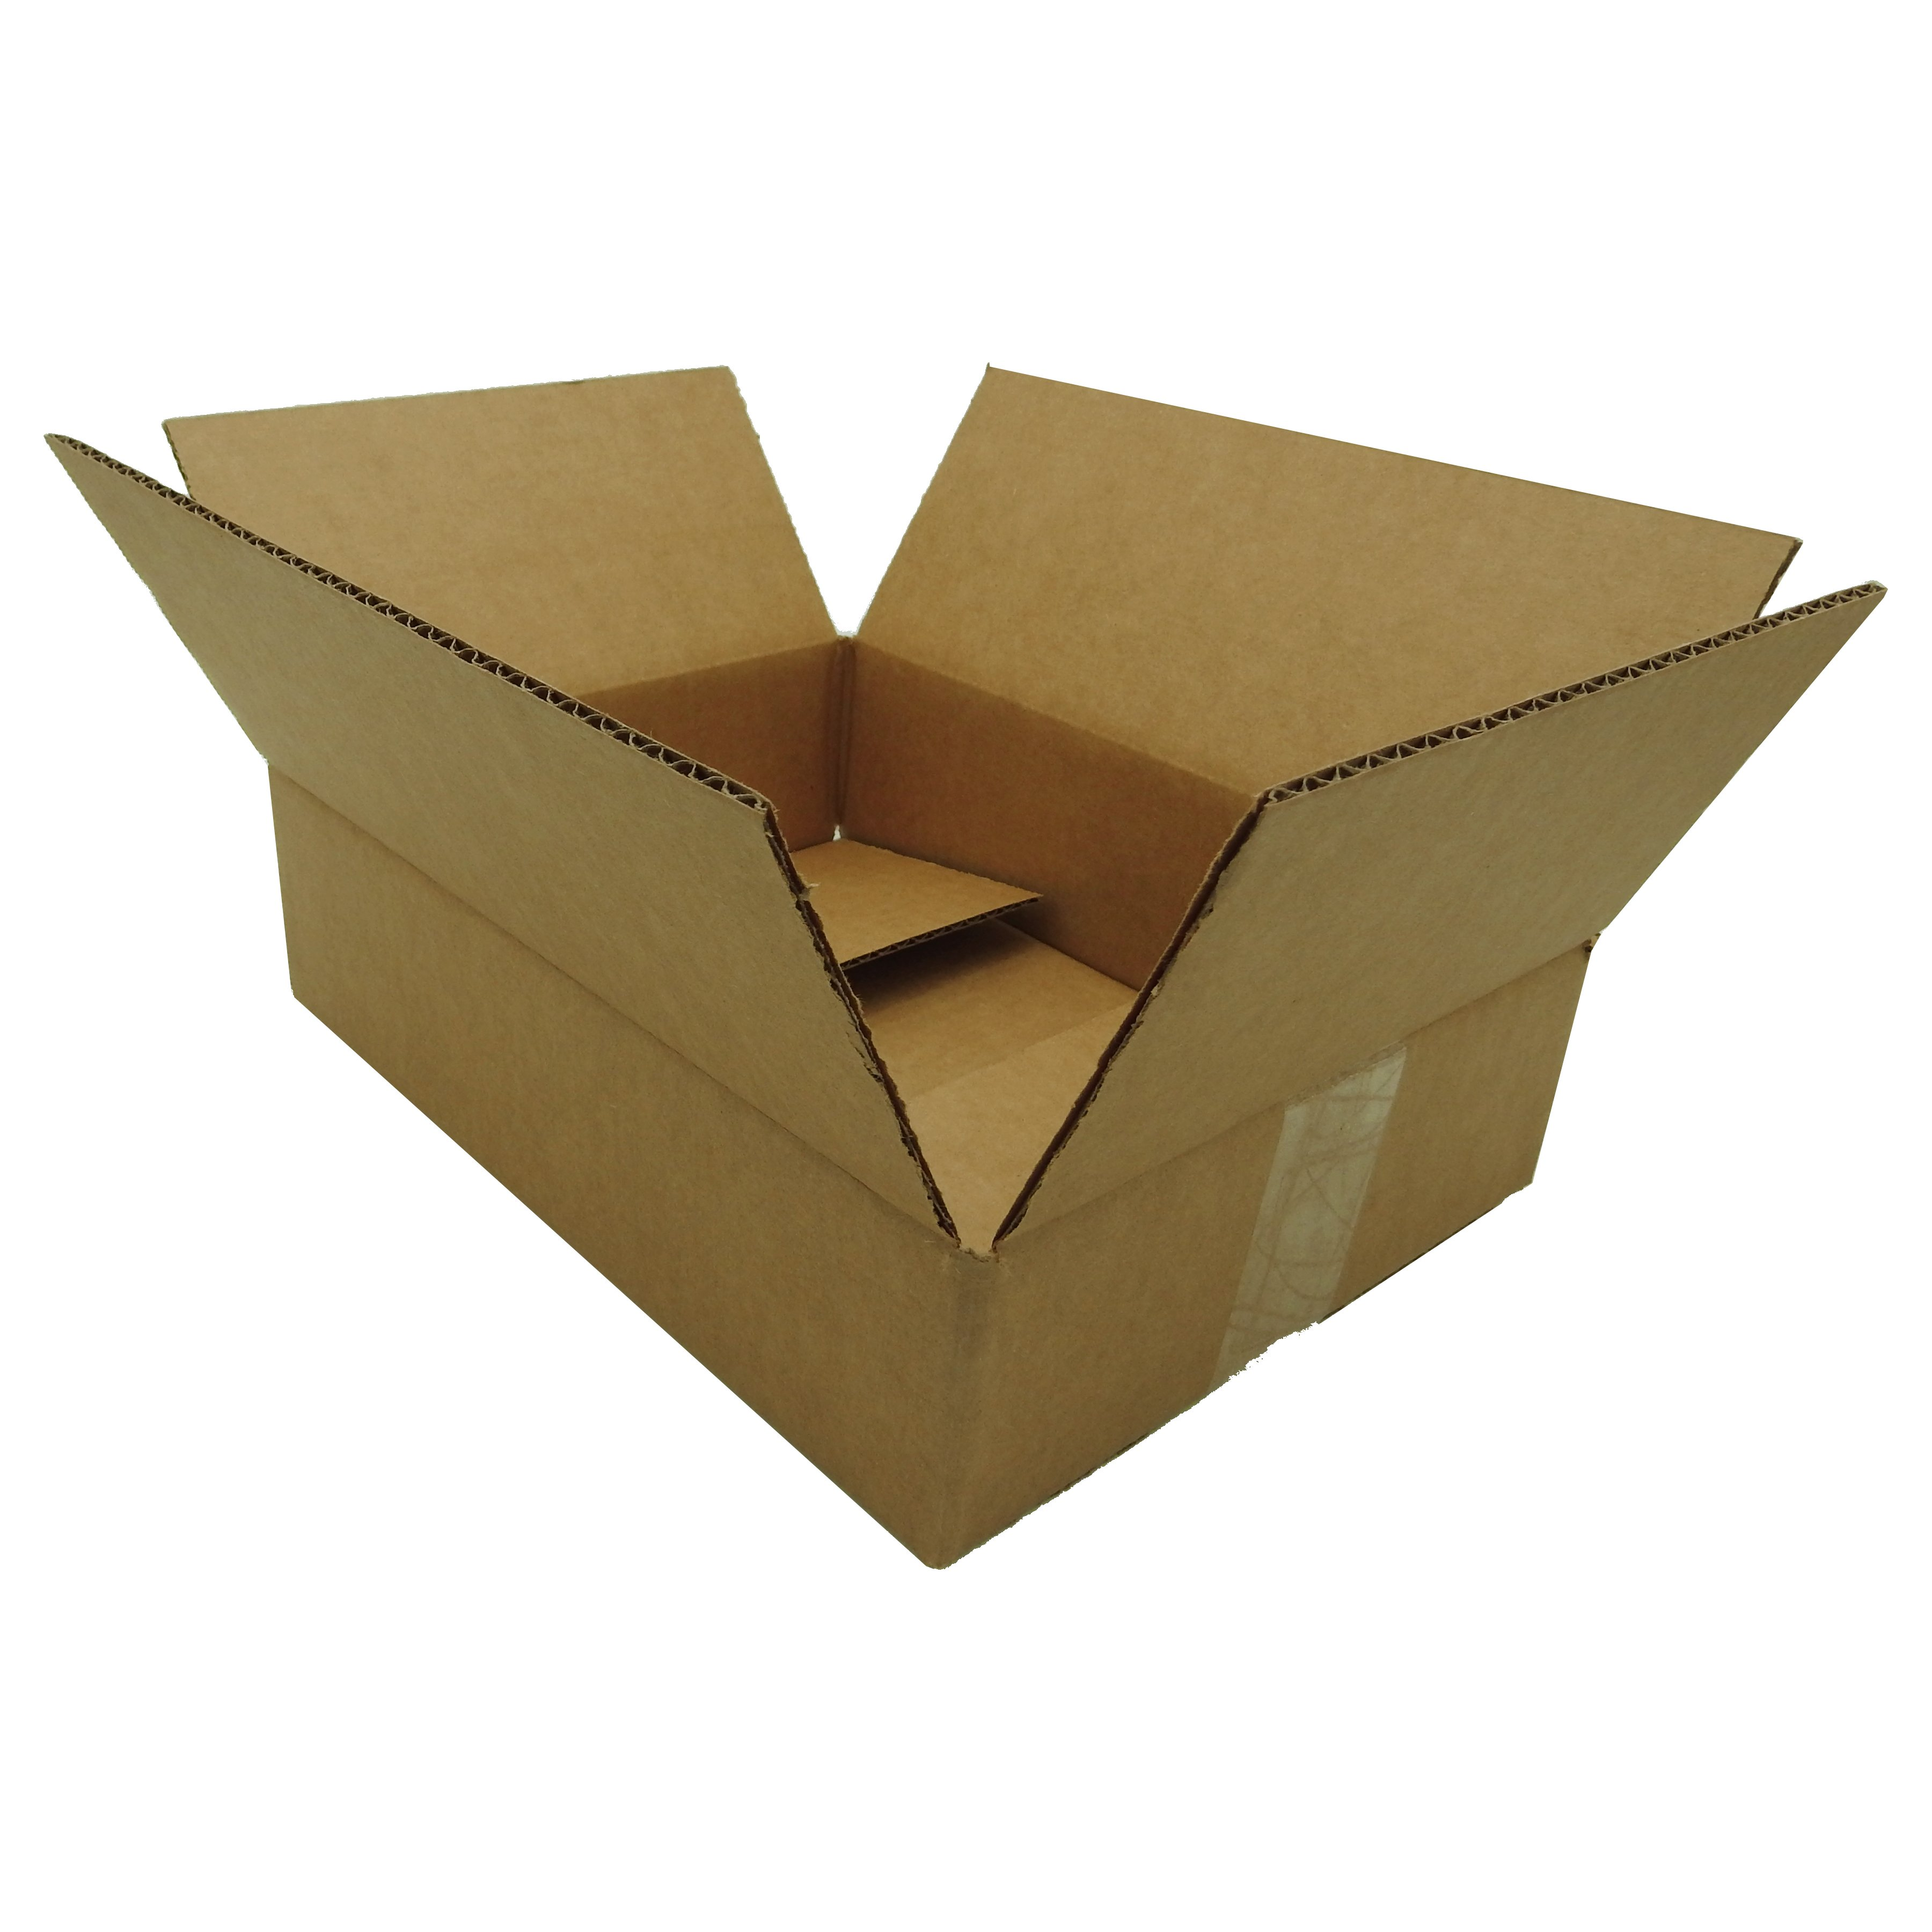 100 12x9x3 Corrugated Cardboard Shipping Mailing Packing Moving Boxes Box Carton